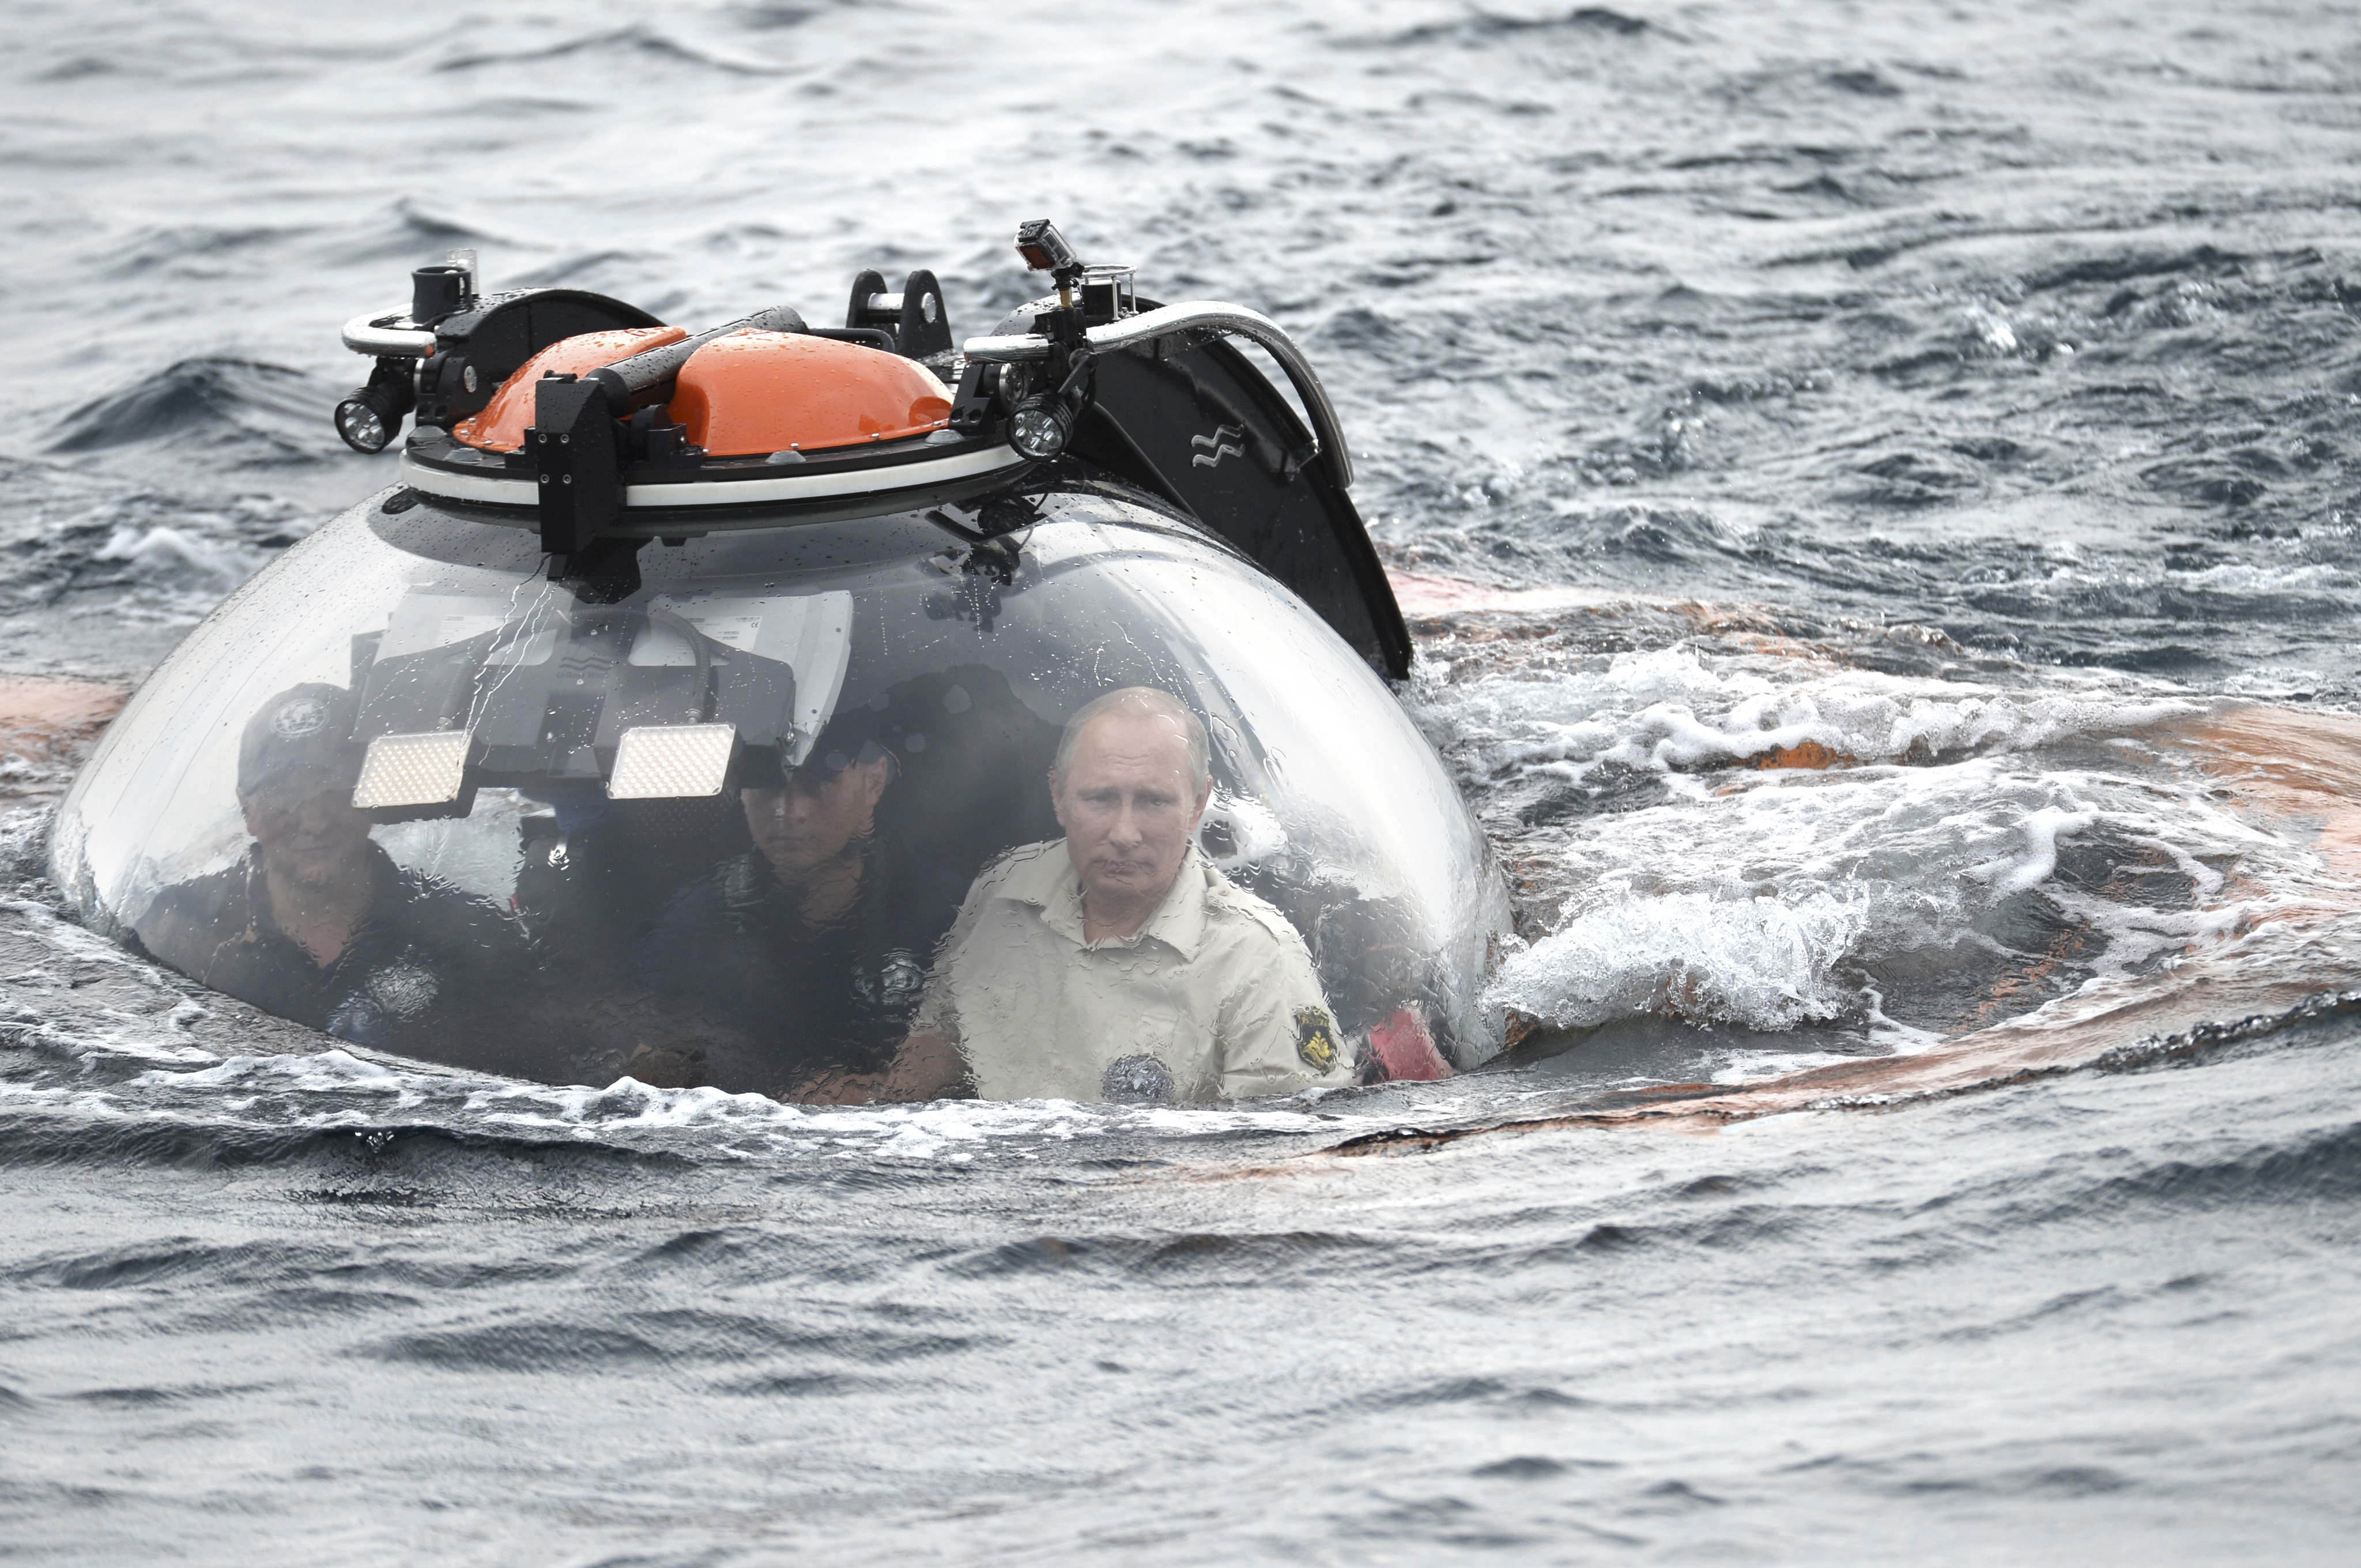 Russian President Putin is seen inside research bathyscaphe while submerging into waters of Black Sea near Sevastopol